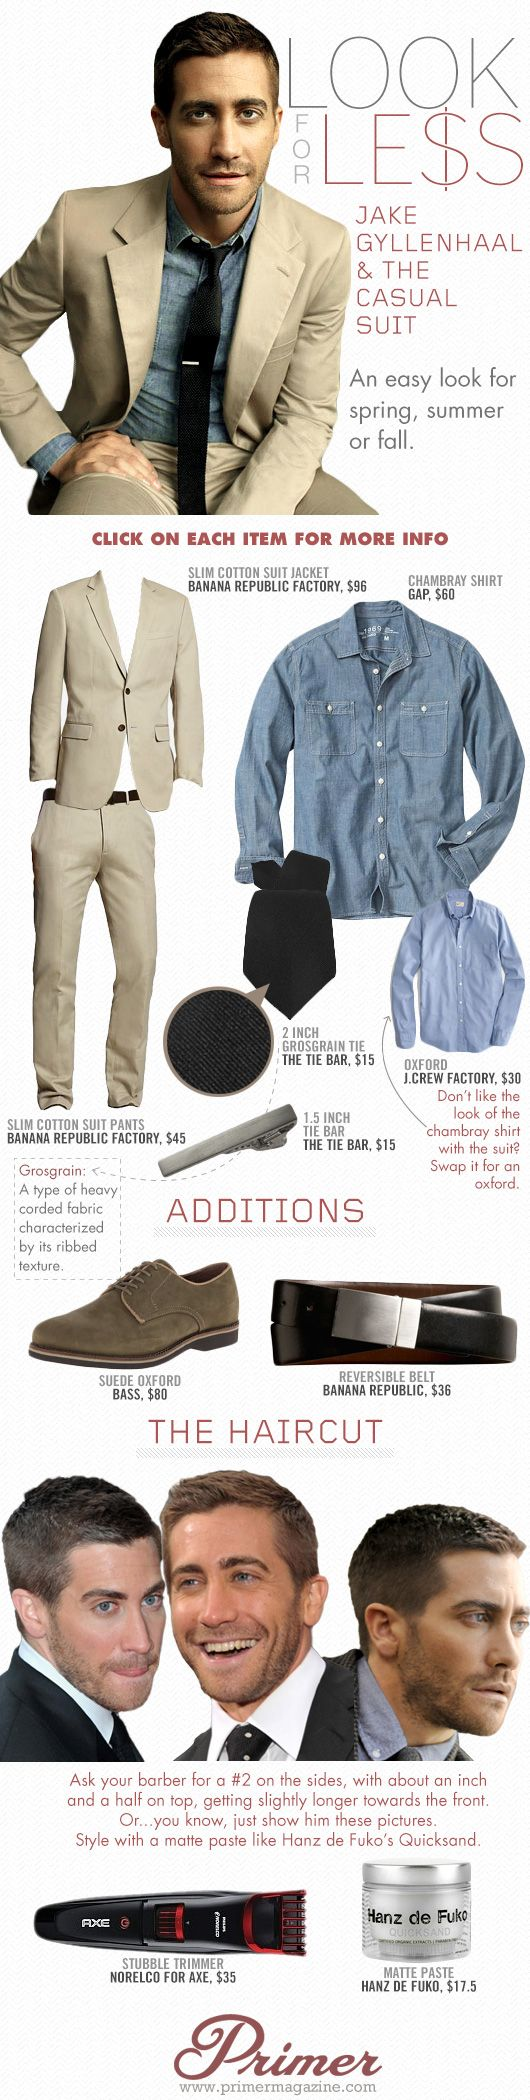 Look for Less: Jake Gyllenhaal & The Casual Suit - Primer #men #fashion